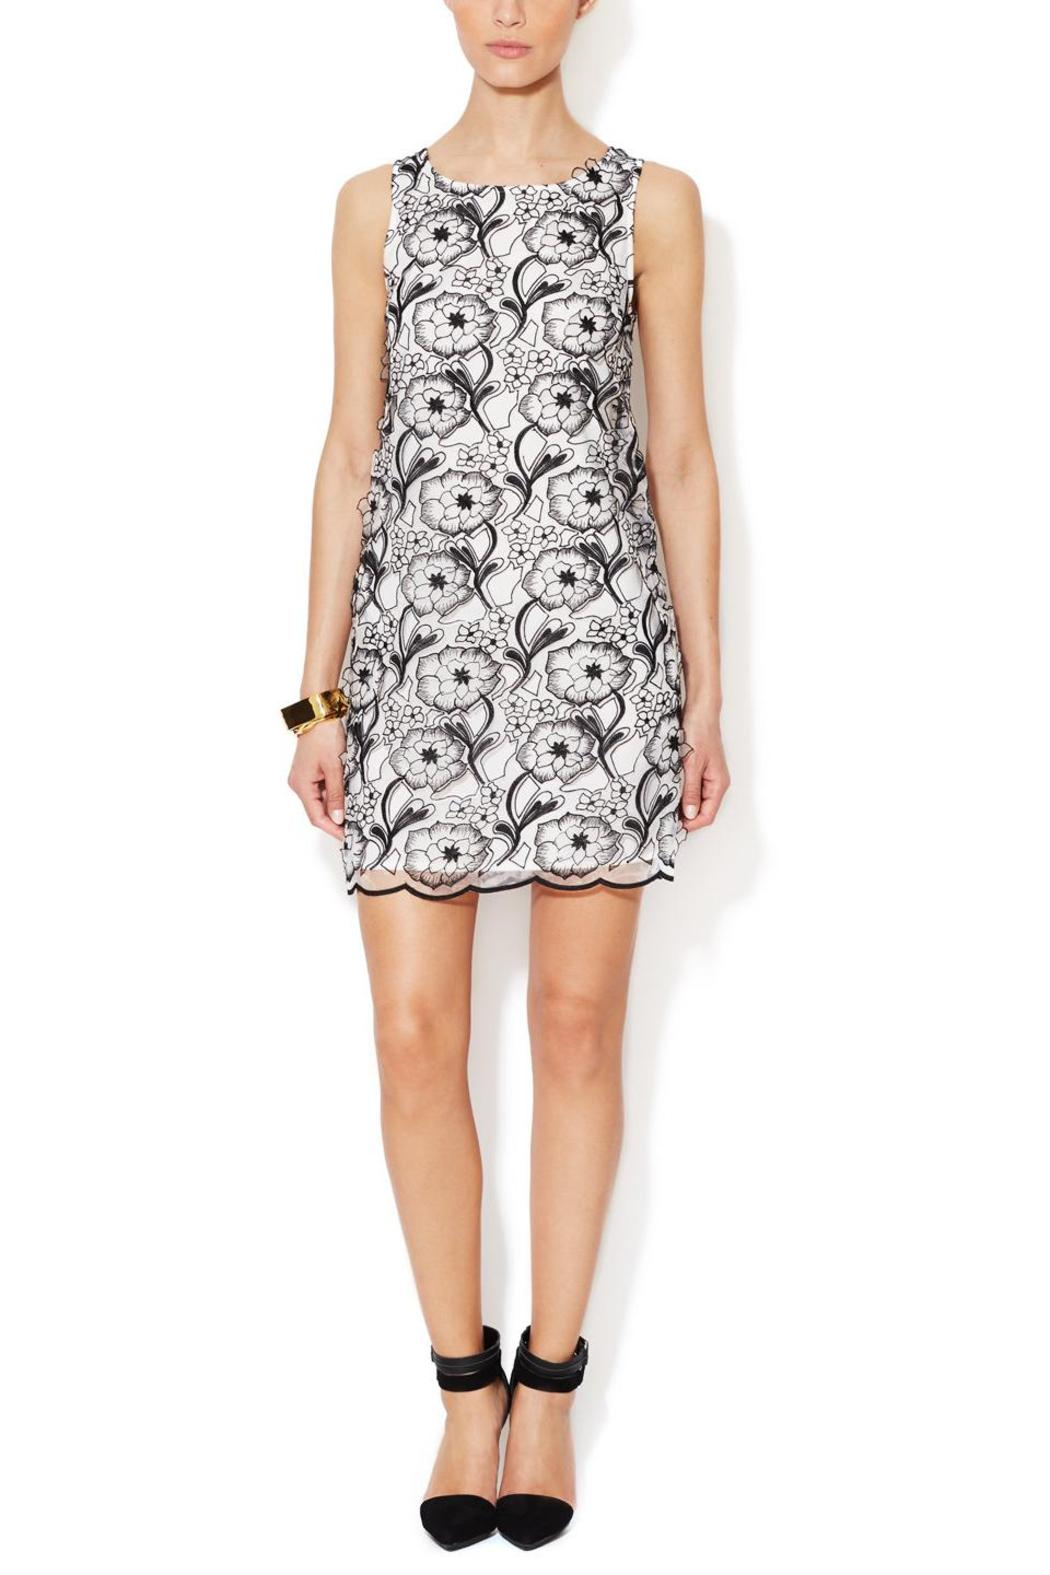 Erin Fetherston 3D Floral Dress - Main Image